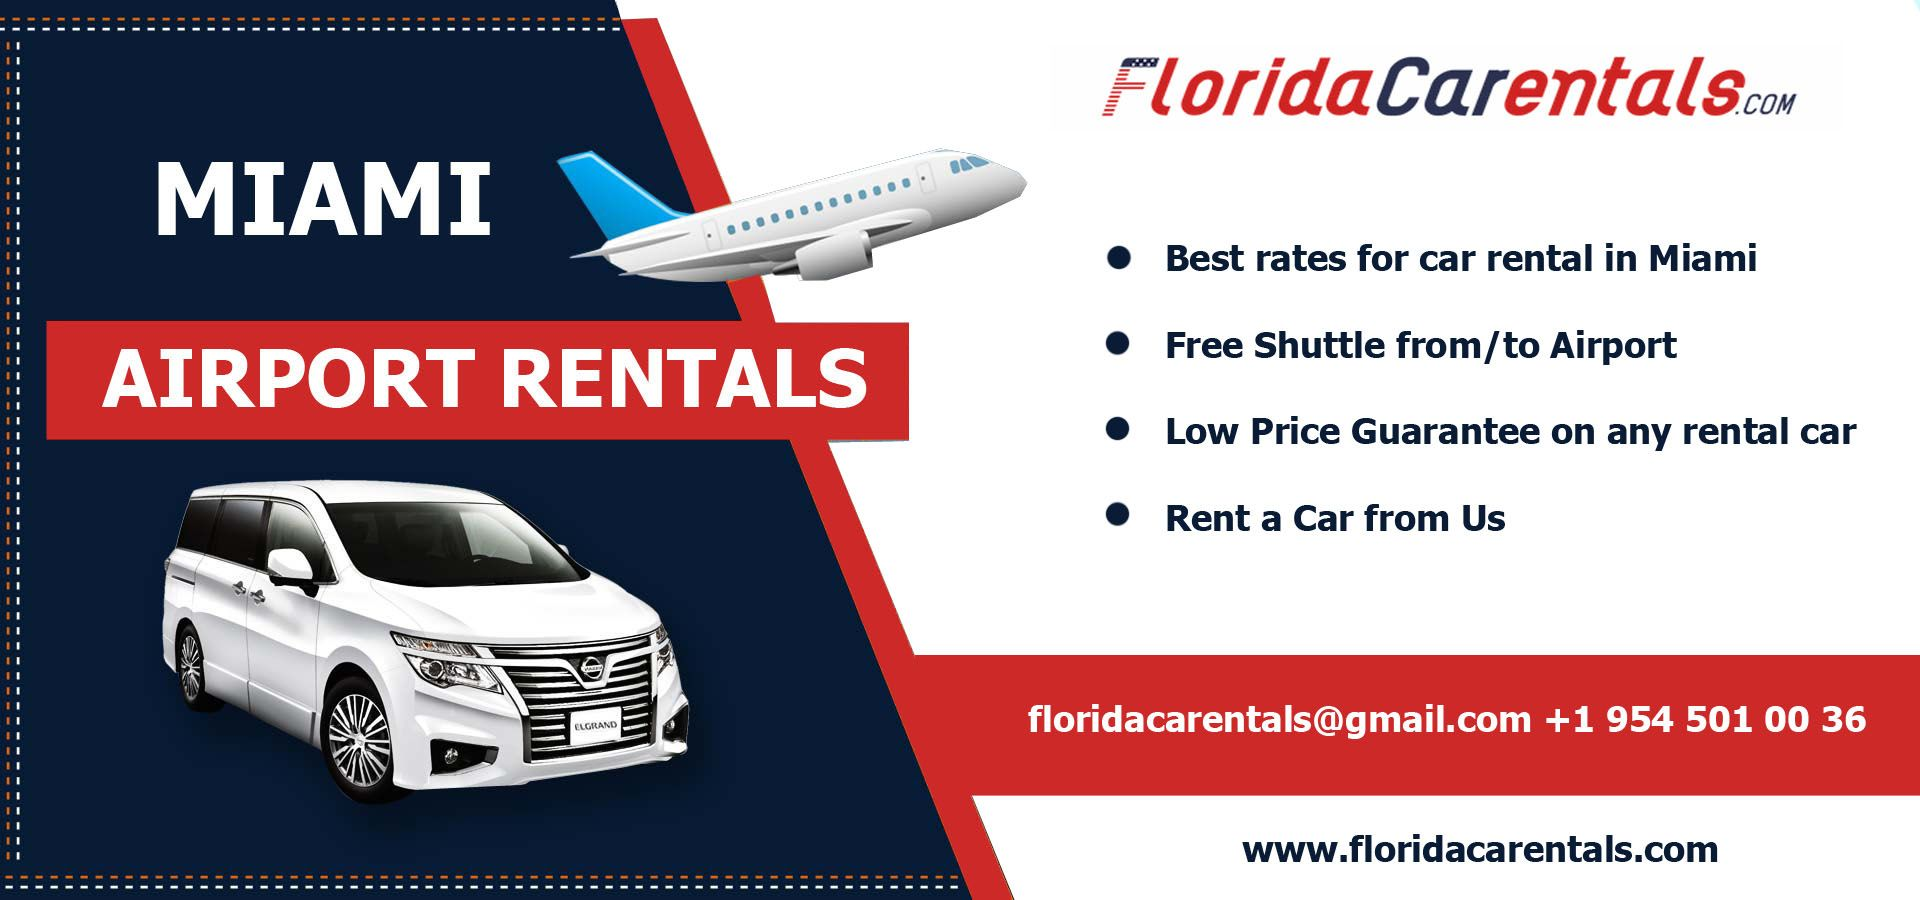 Pin By Florida Car Rentals On Florida Carentals Pinterest Car